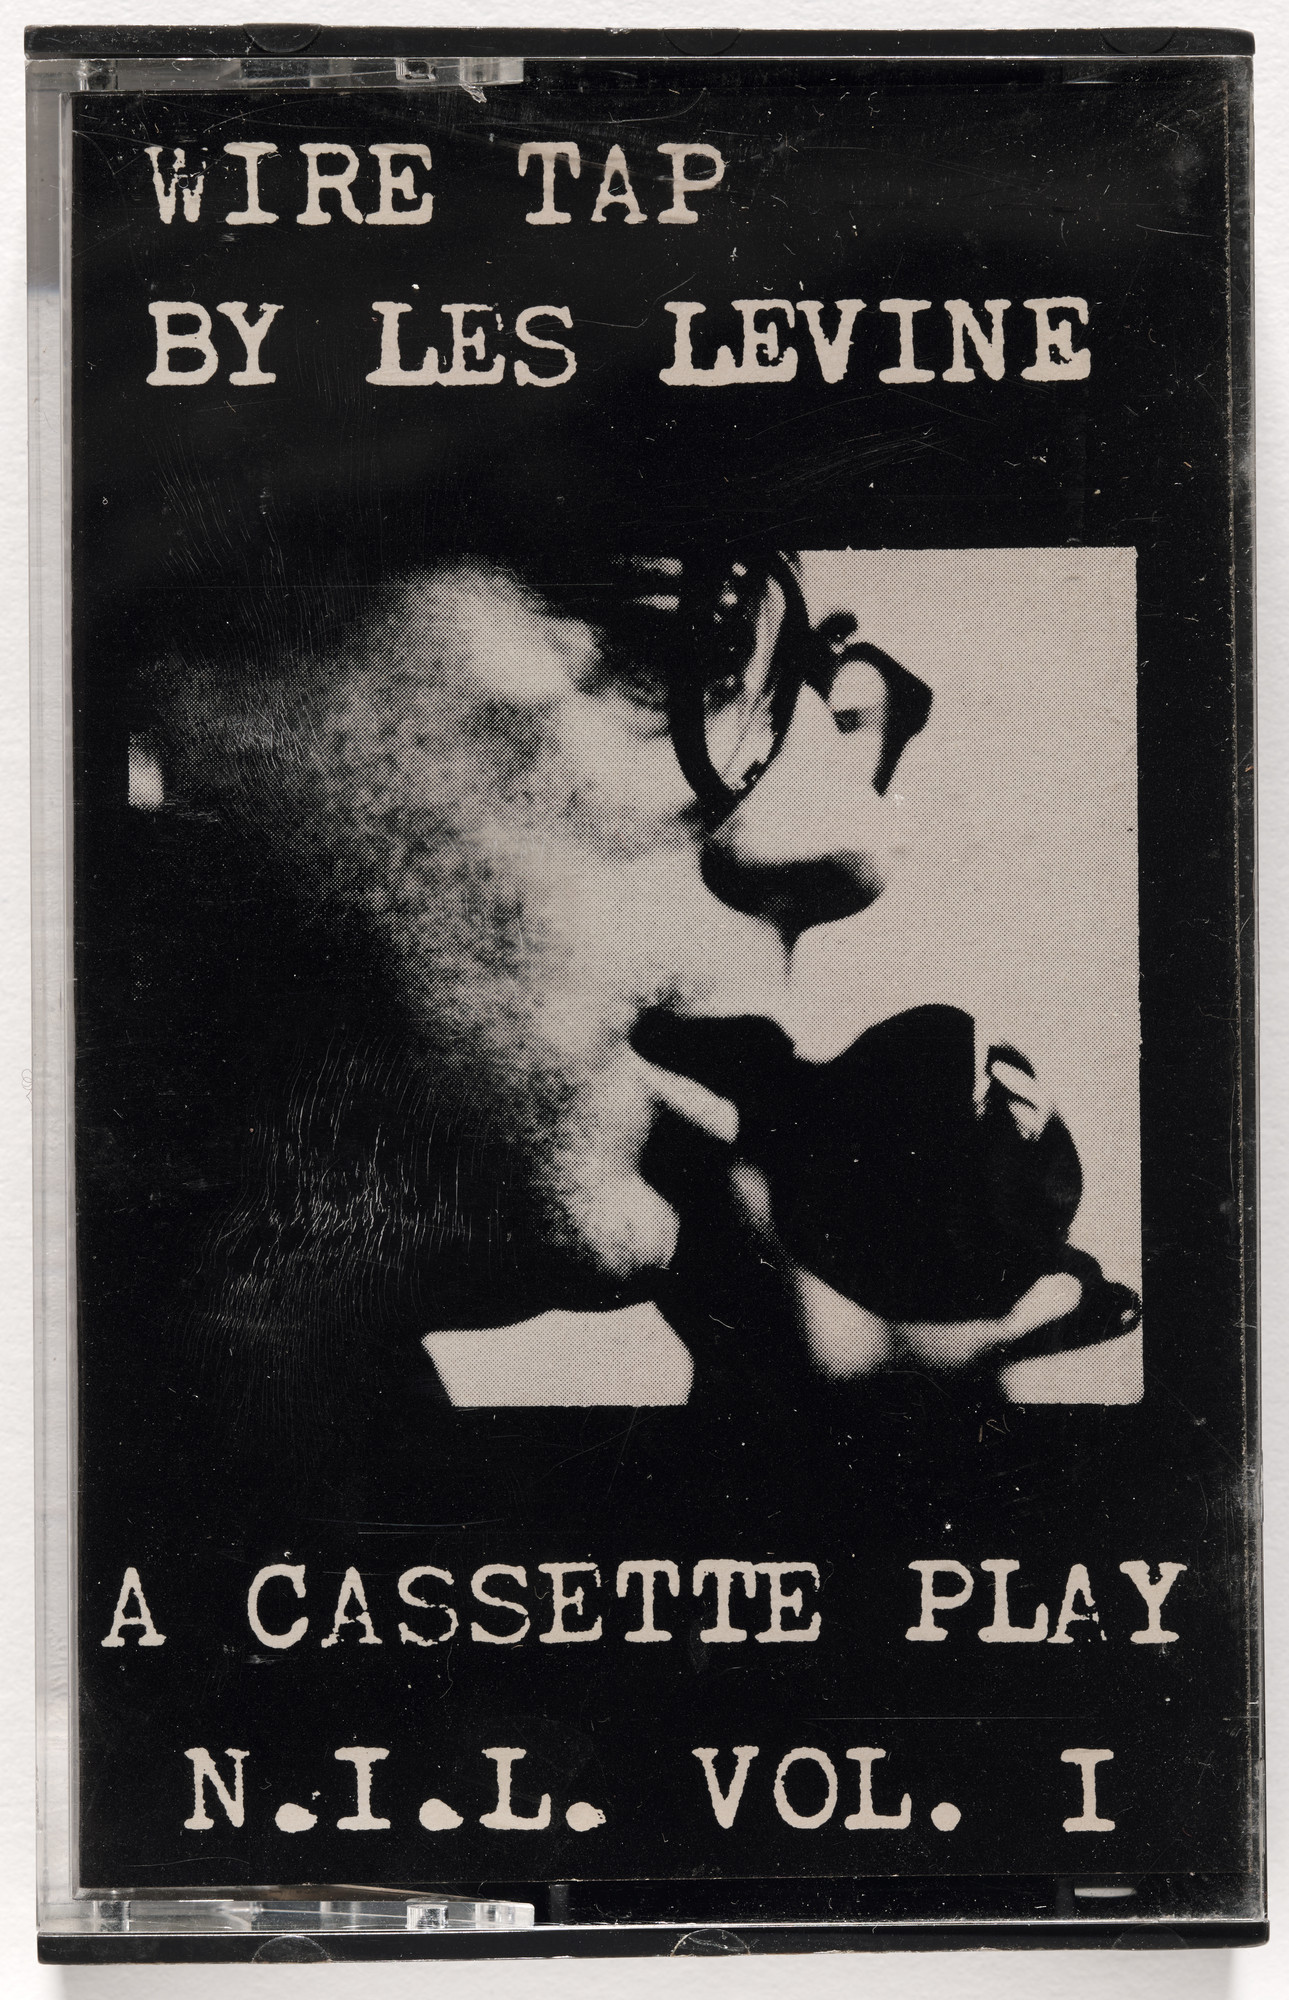 Les Levine. Telephone Conversations. Wire Tap. A Cassette Play. N.I.L. vol. 1-3 and John & Mimi's Book of Love. A Cassette Play. N.I.L. vol. 4. n.d.